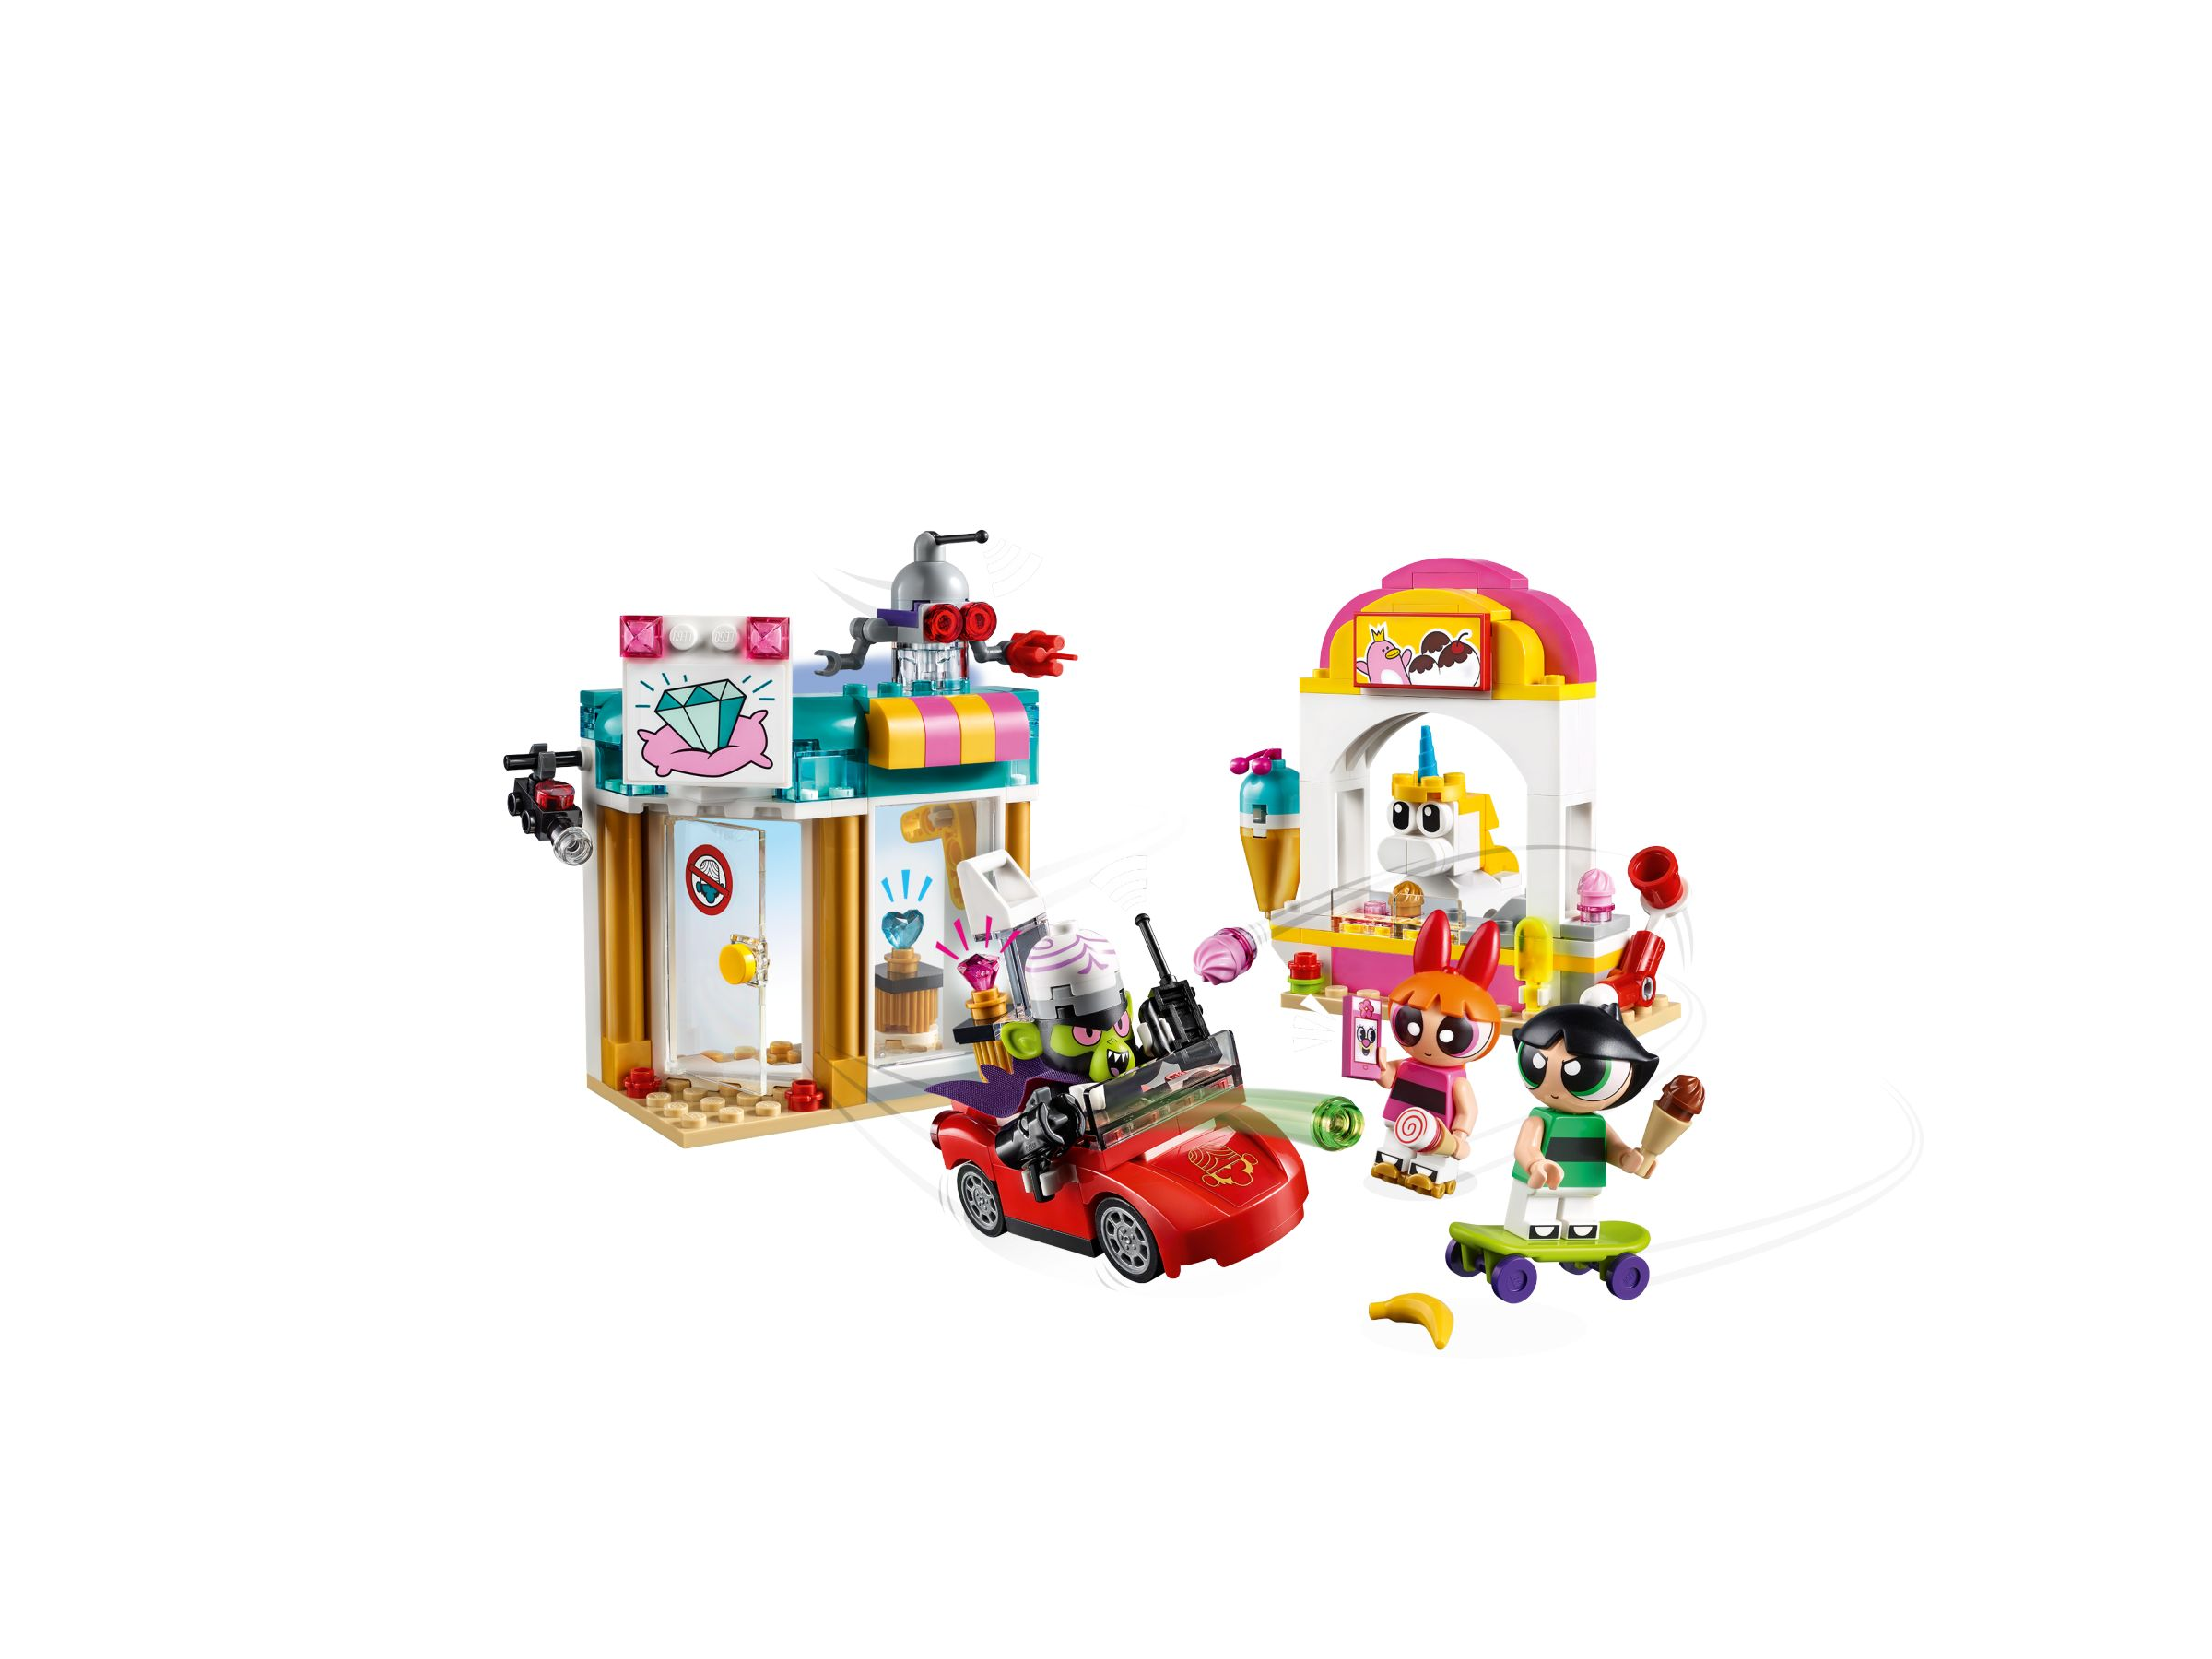 LEGO The Powerpuff Girls 41288 Angriff von Mojo Jojo LEGO_41288_alt2.jpg